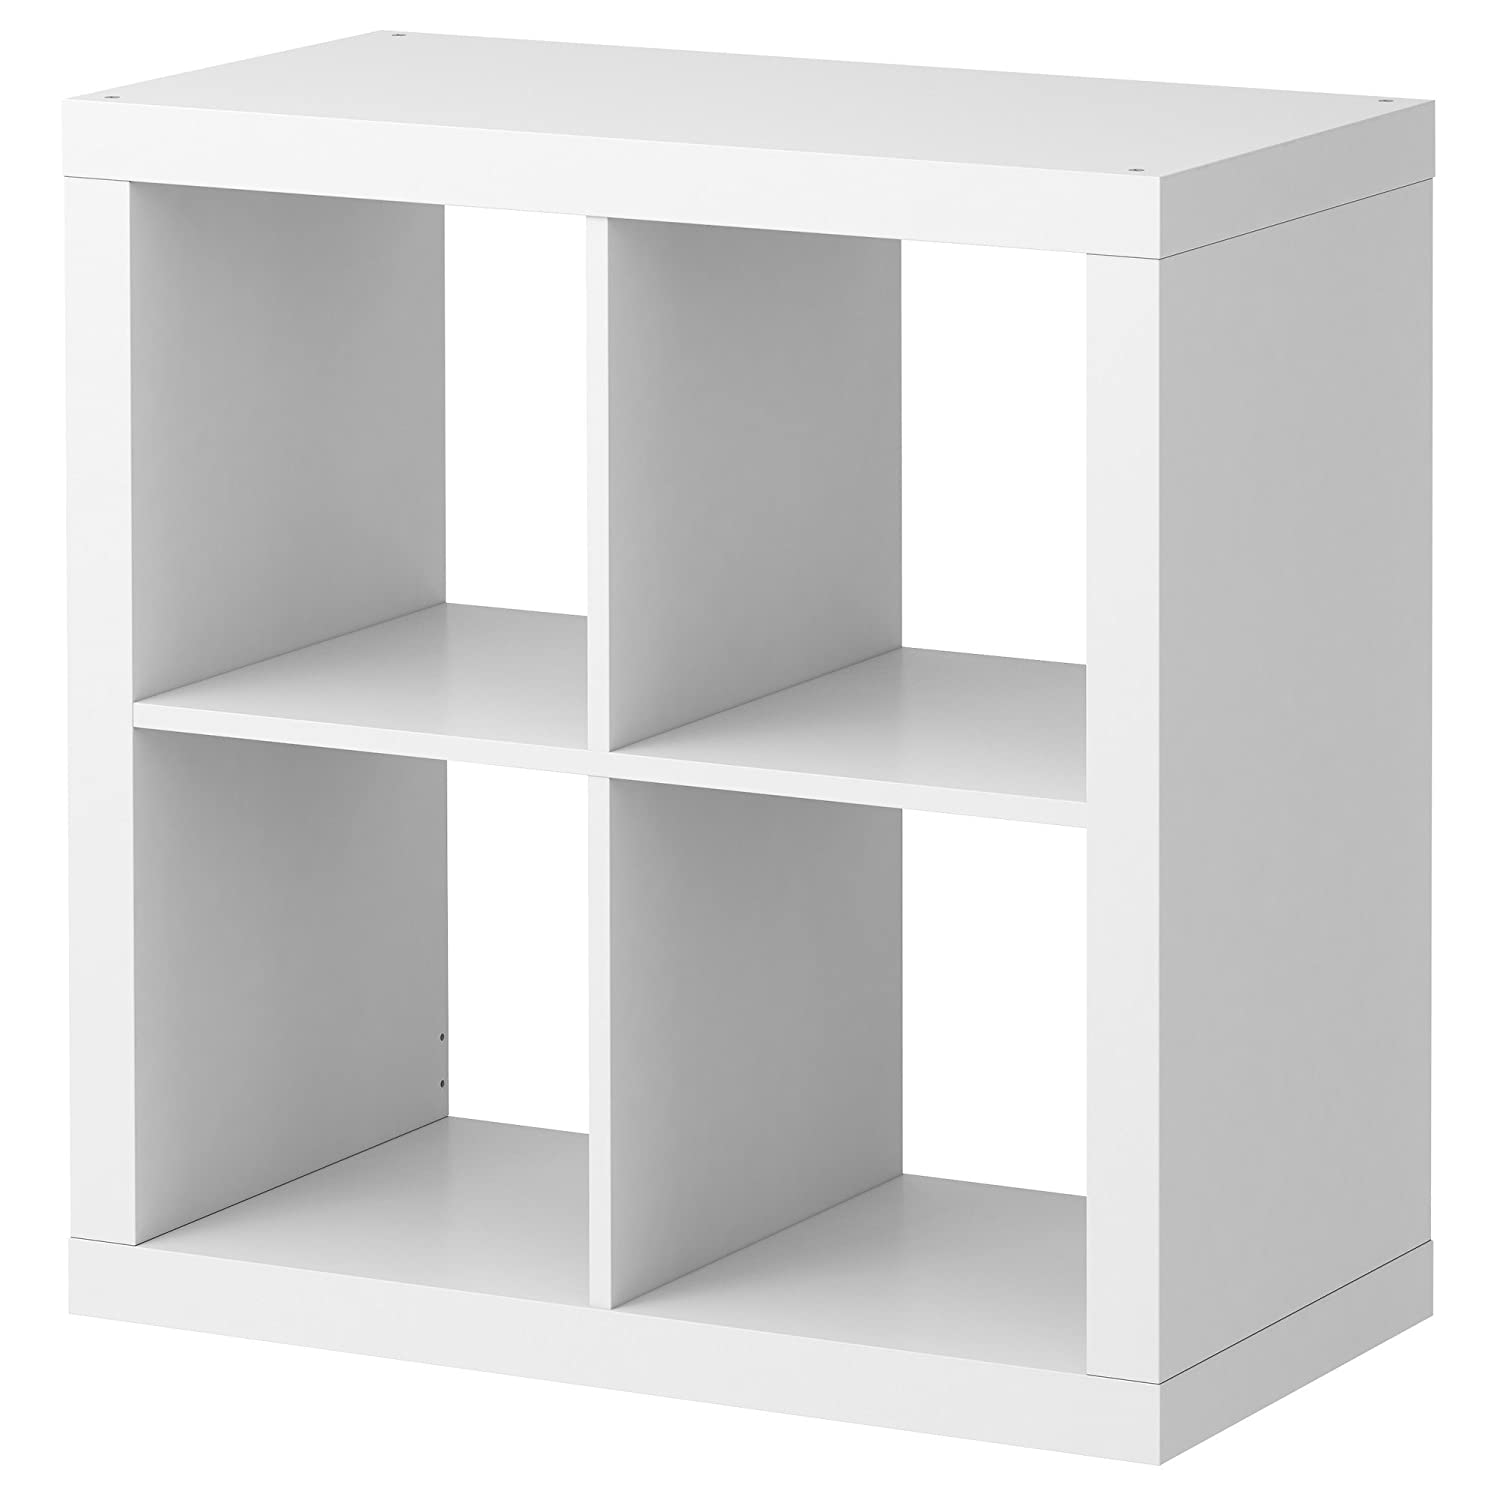 Nice IKEA KALLAX SHELVING UNIT, BOOKCASE, WHITE, PERFECT FOR BASKETS OR BOXES:  Amazon.co.uk: Kitchen U0026 Home